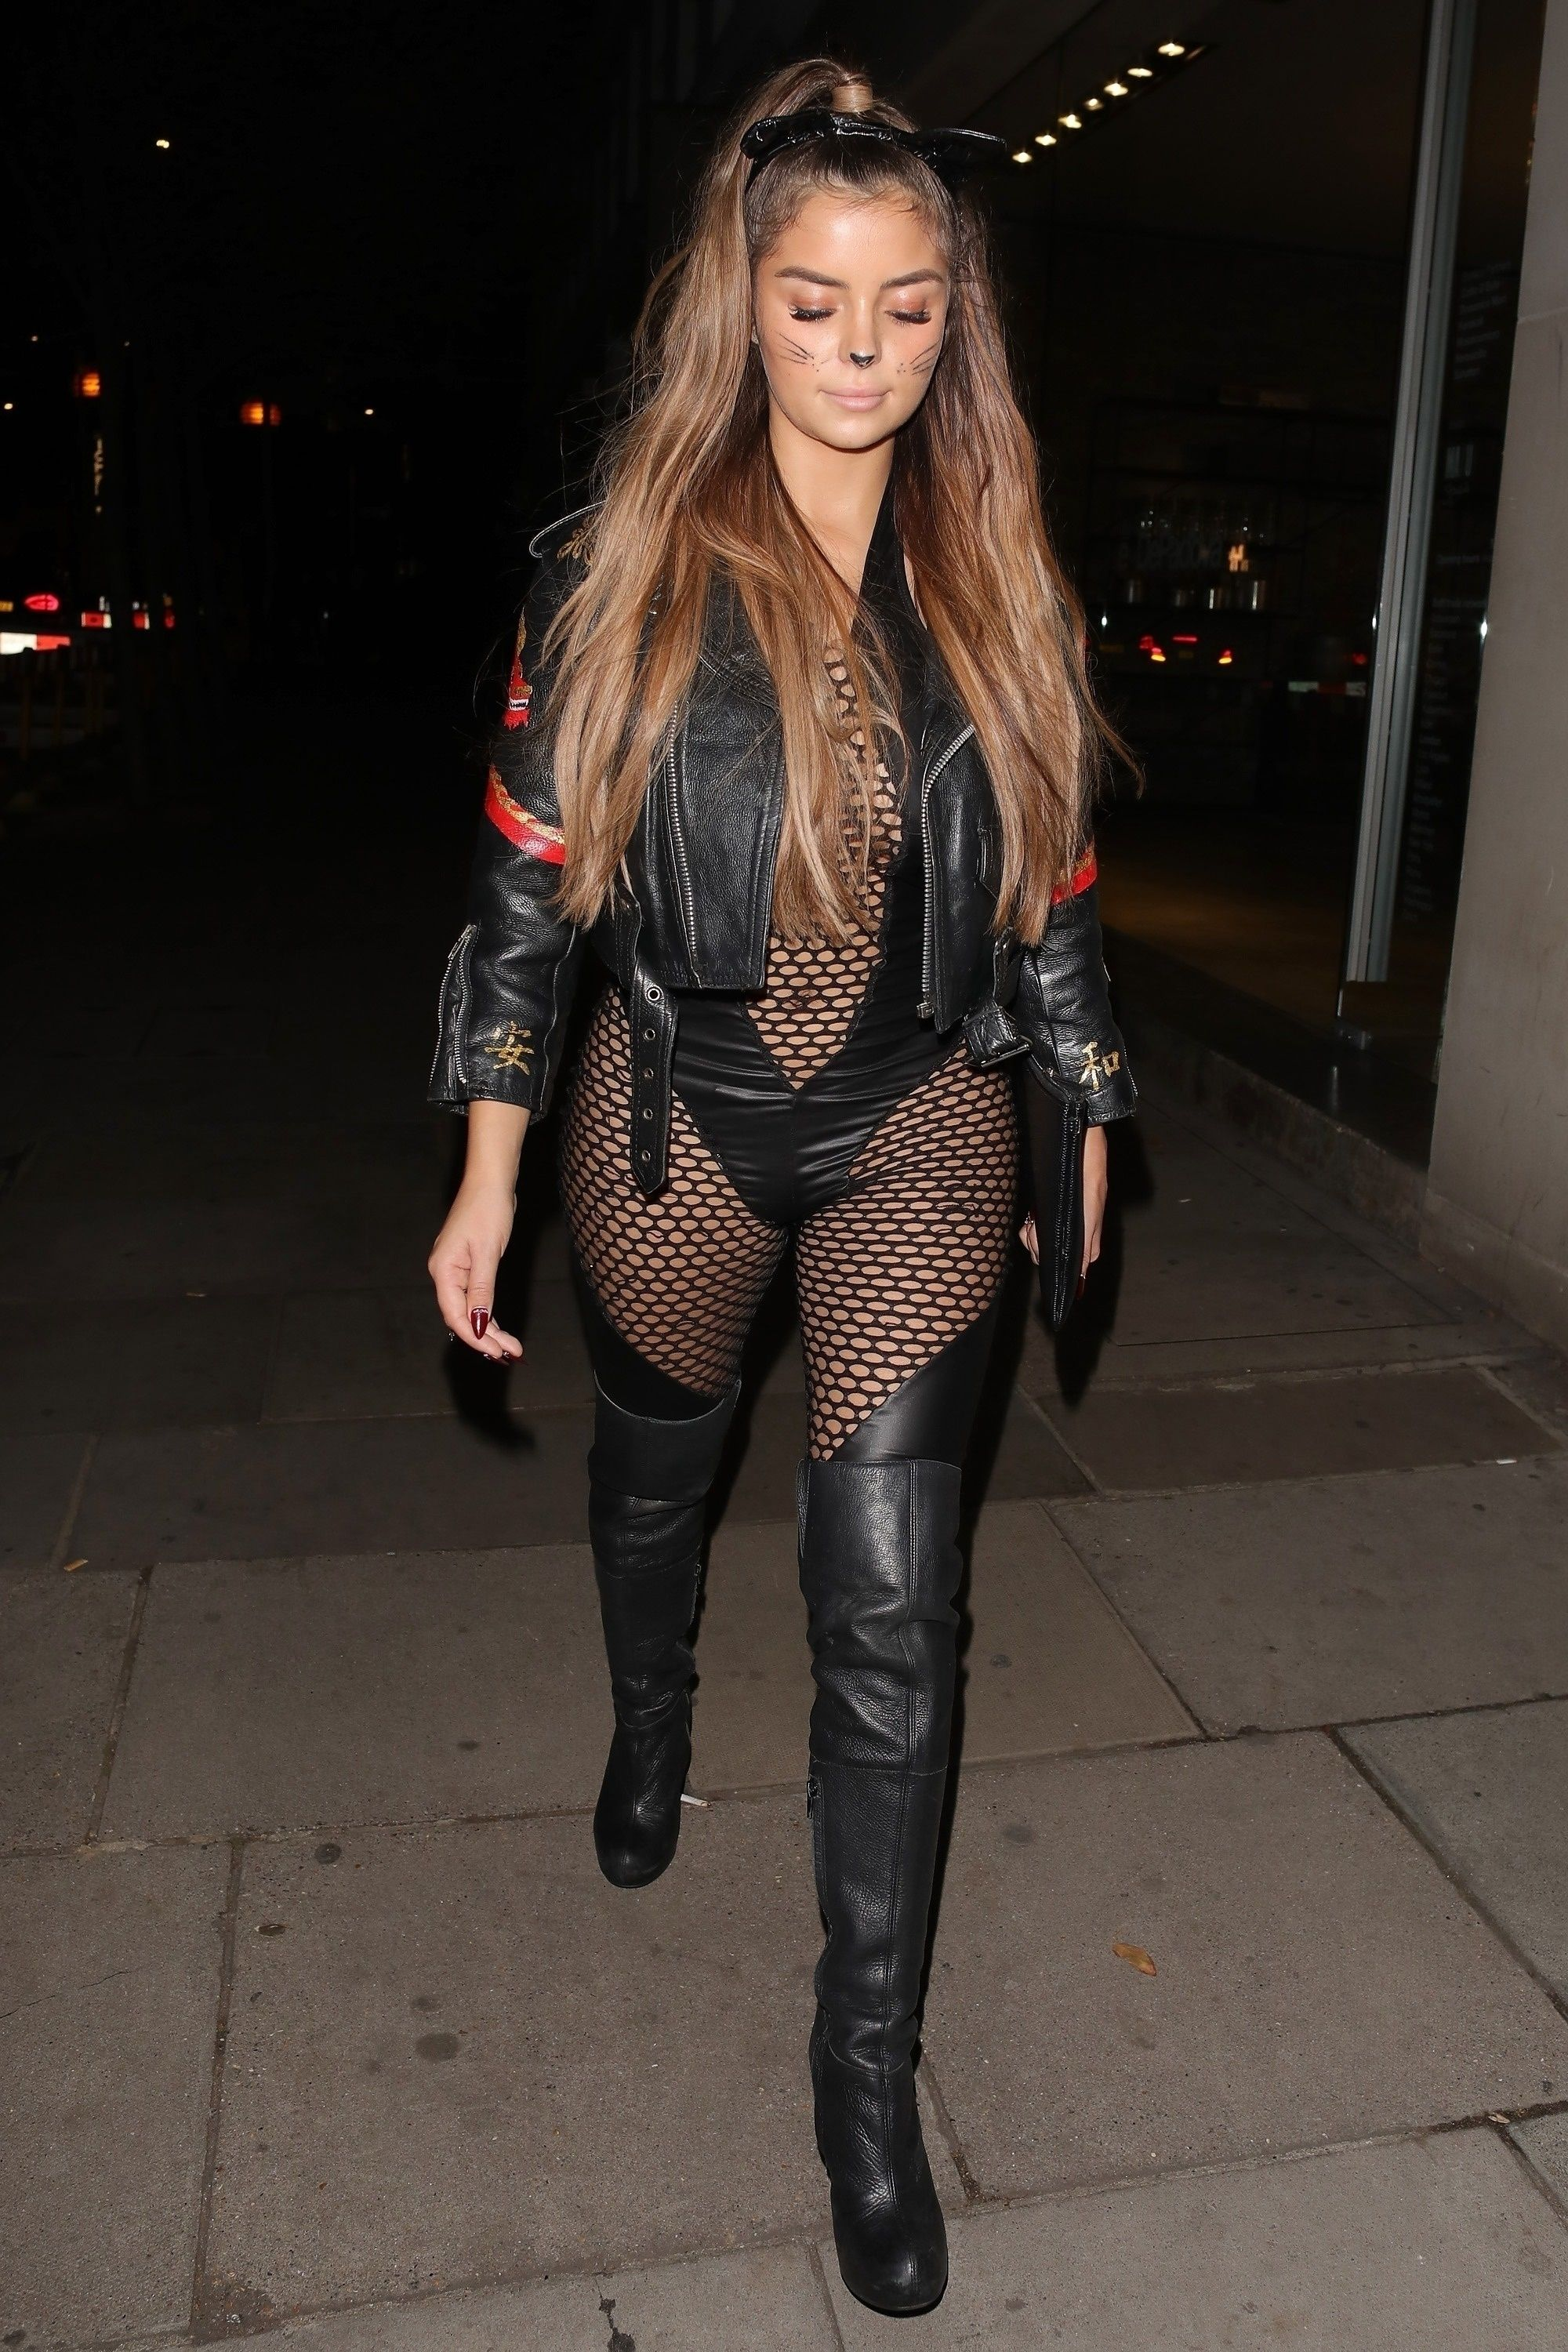 Demi Rose Mawby @Halloween party at Ours in London 27 Oct, 2018